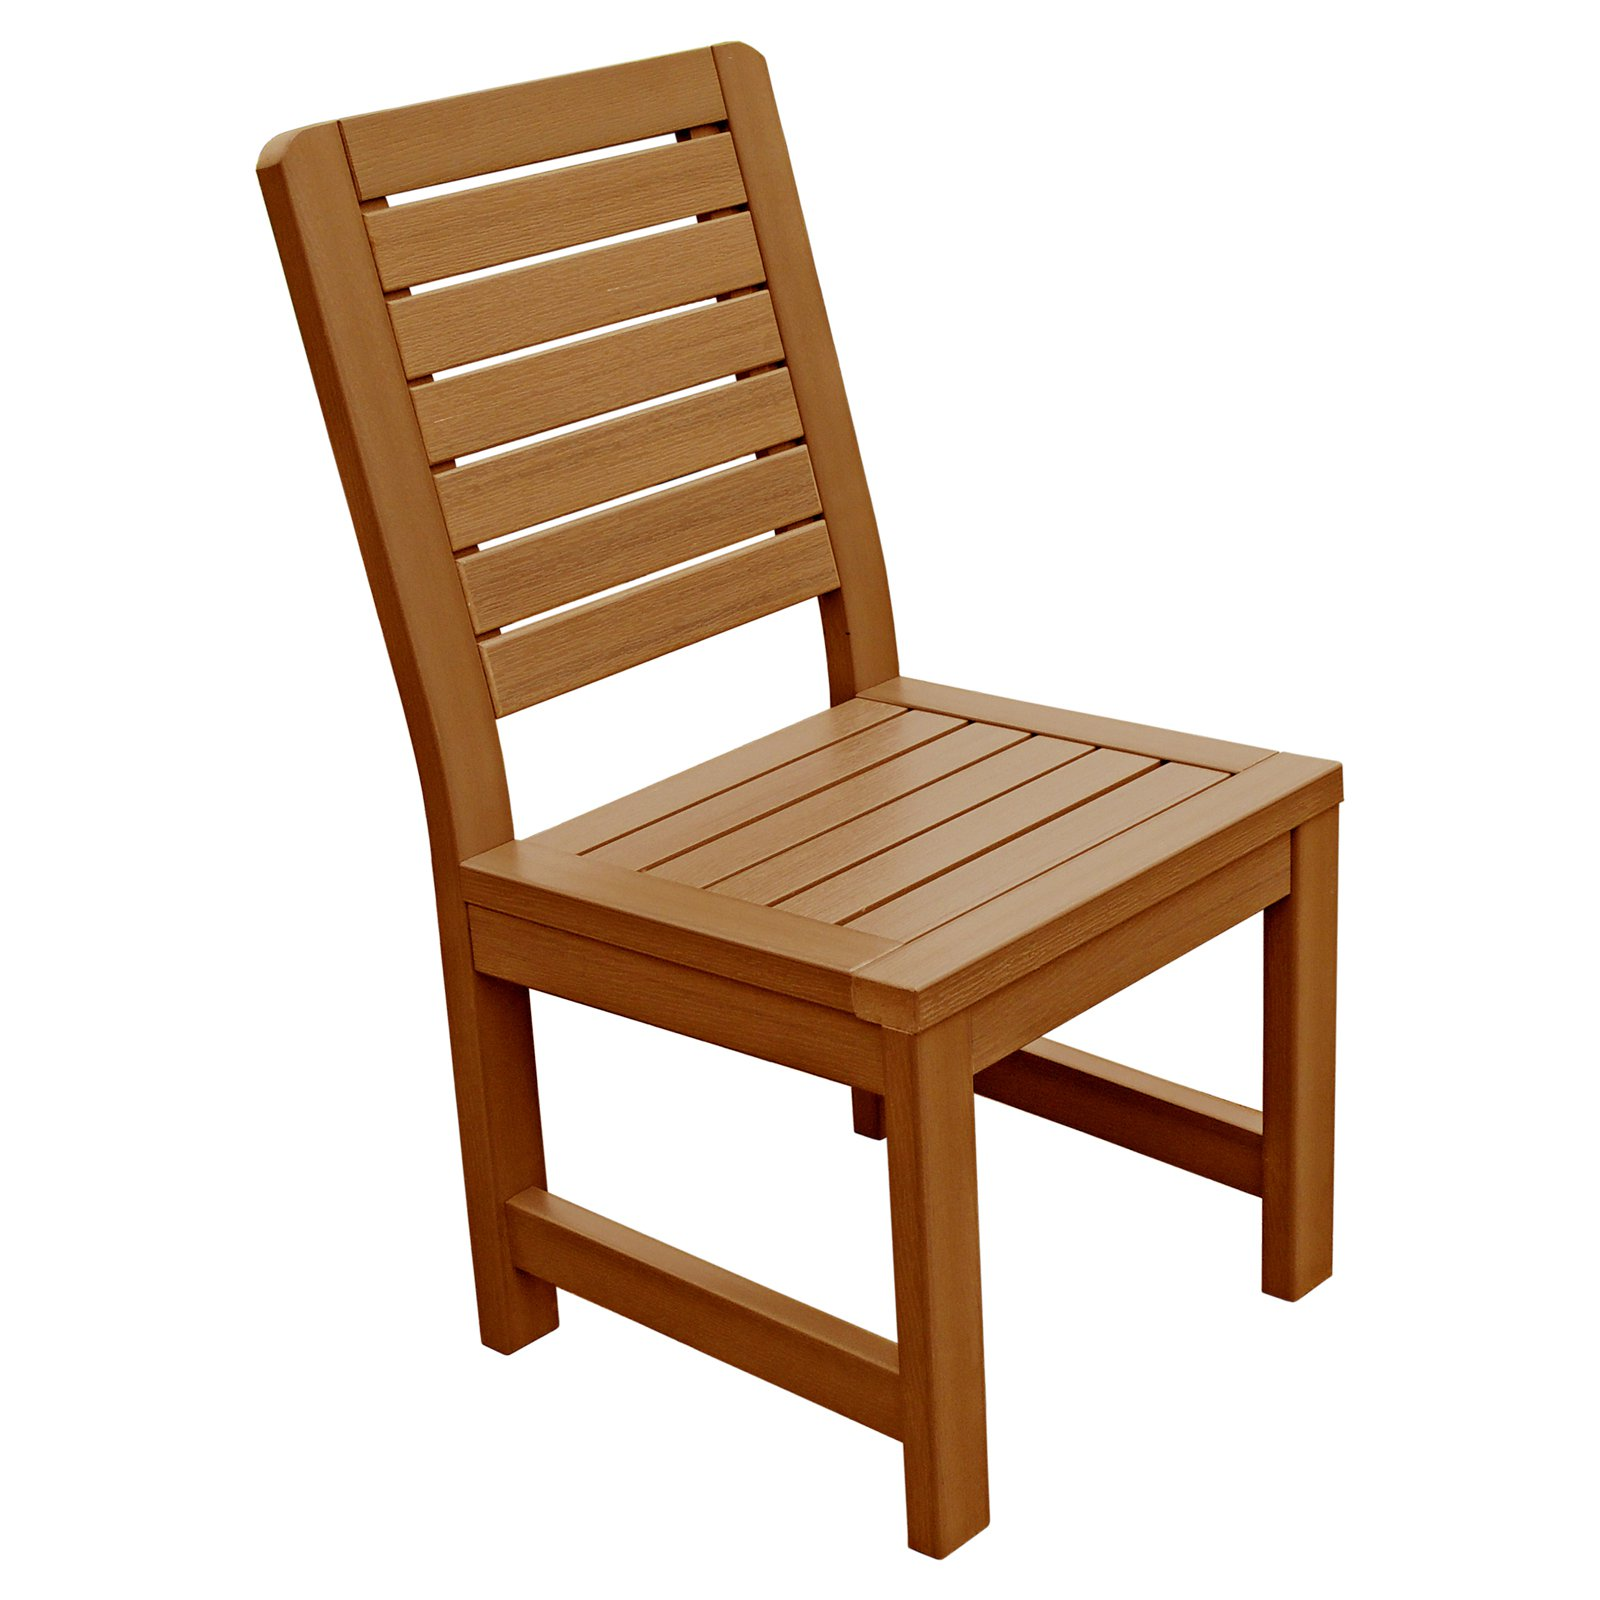 highwood® Weatherly Recycled Plastic Patio Dining Side Chair